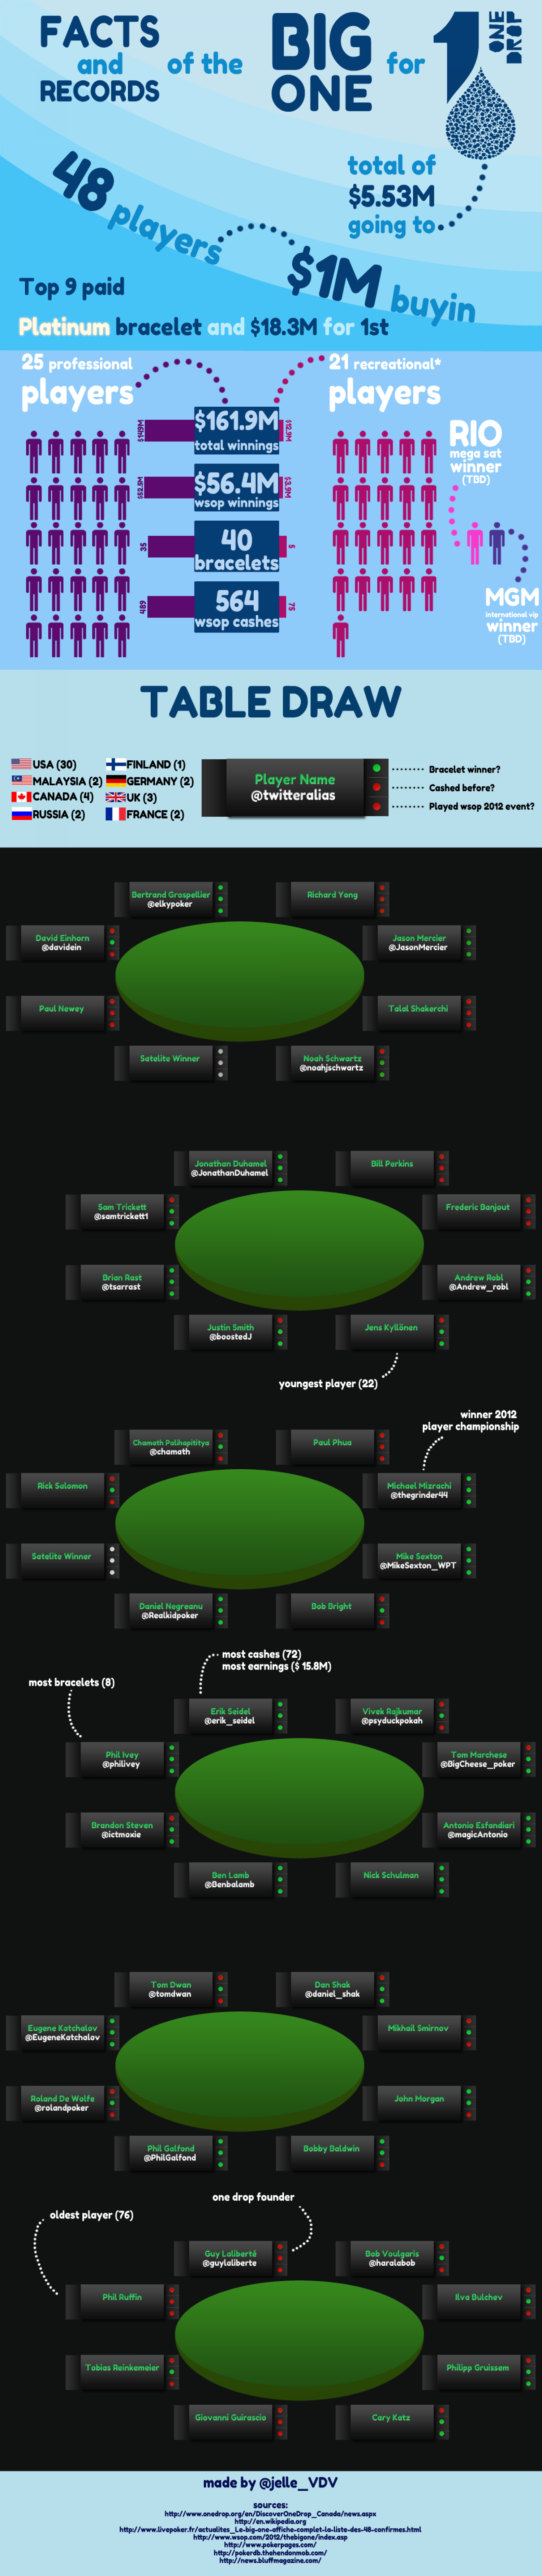 The big one for one drop @ wsop Infographic